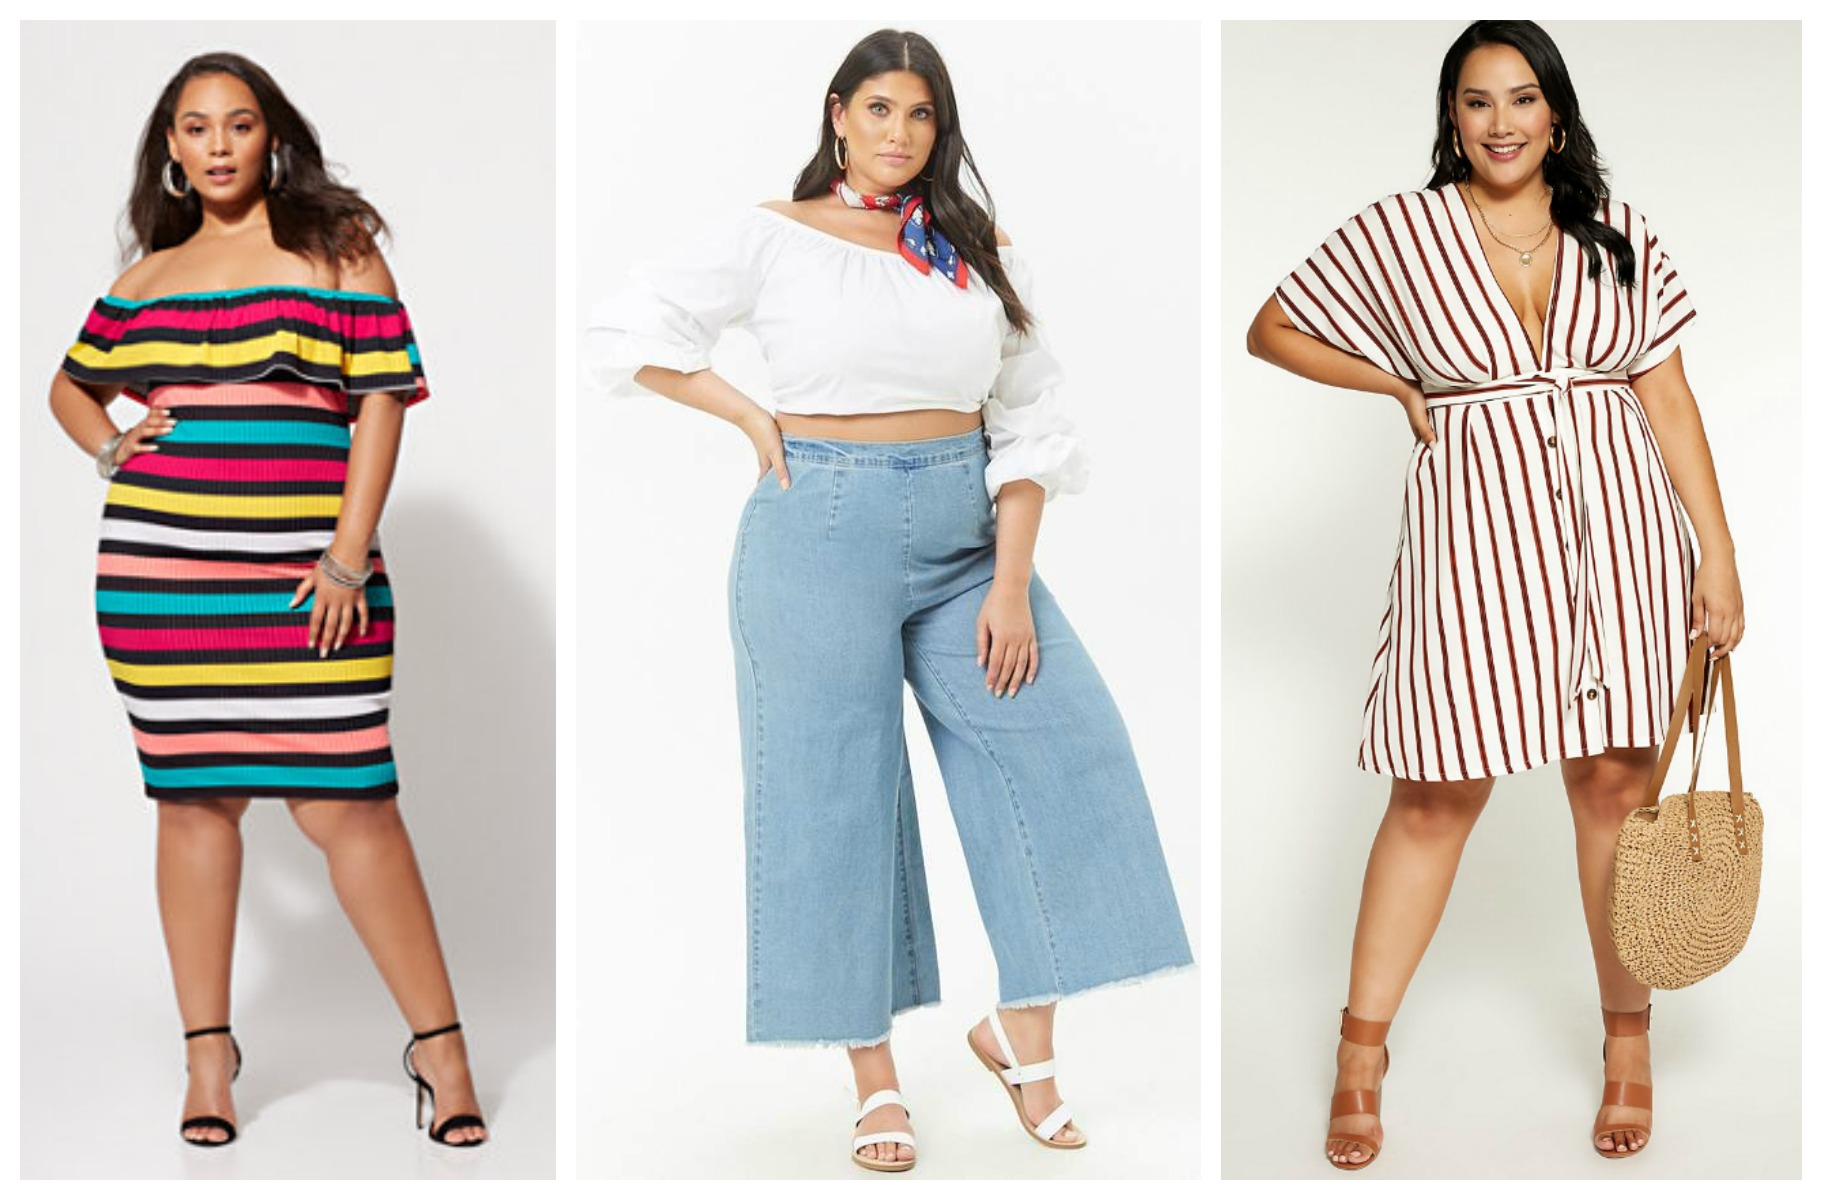 925a0120e27 The weekend is finally here and we couldn t be happier. July is still going  strong with some amazing steals and deals from some of your favorite plus  size ...